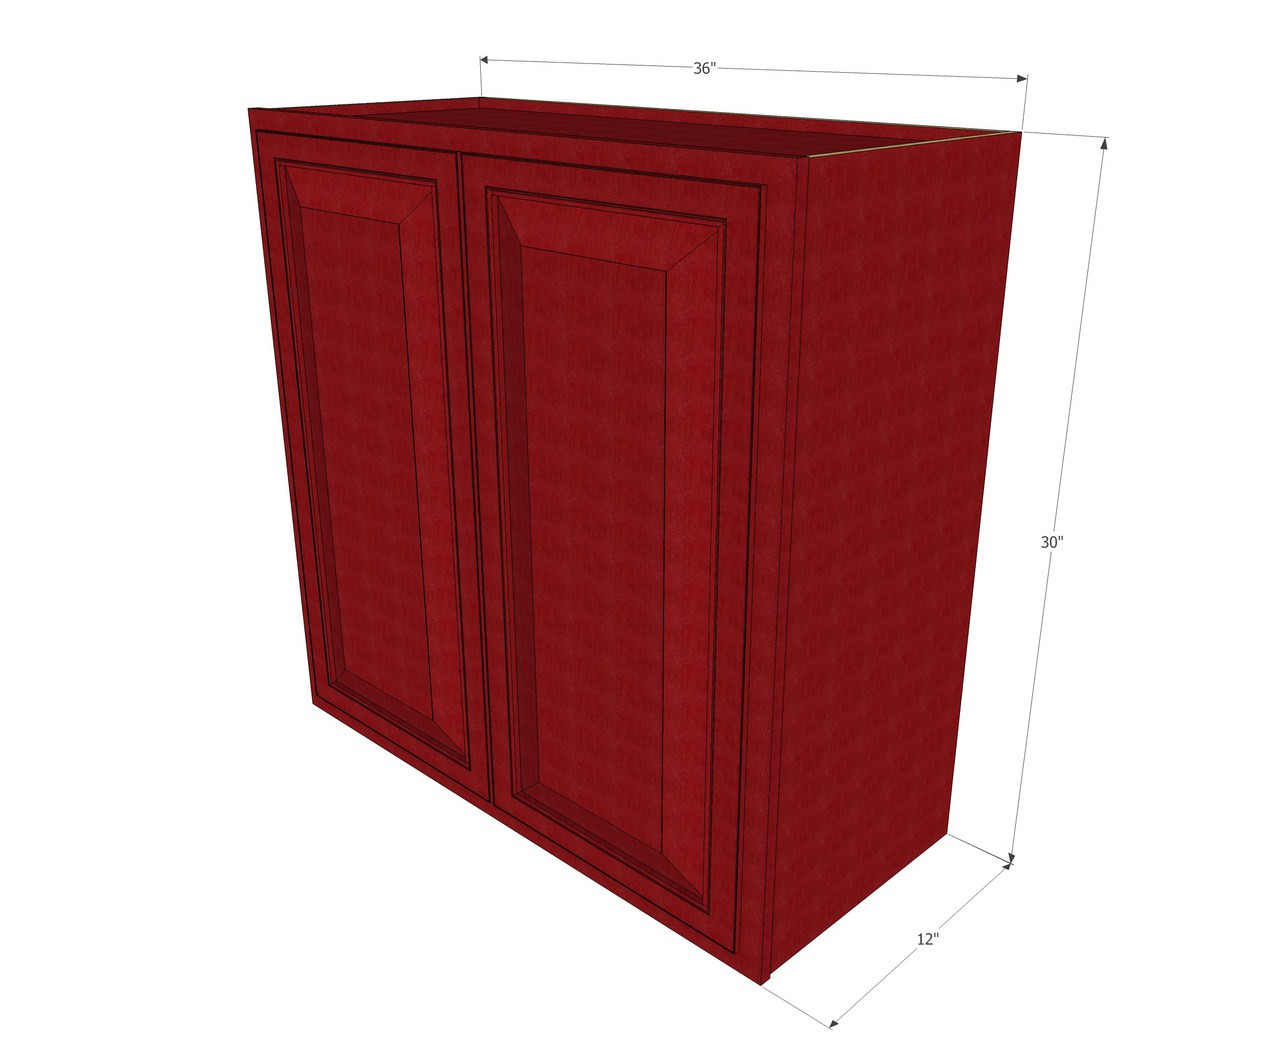 Large double door grand reserve cherry wall cabinet 36 for Kitchen cabinets 36 high